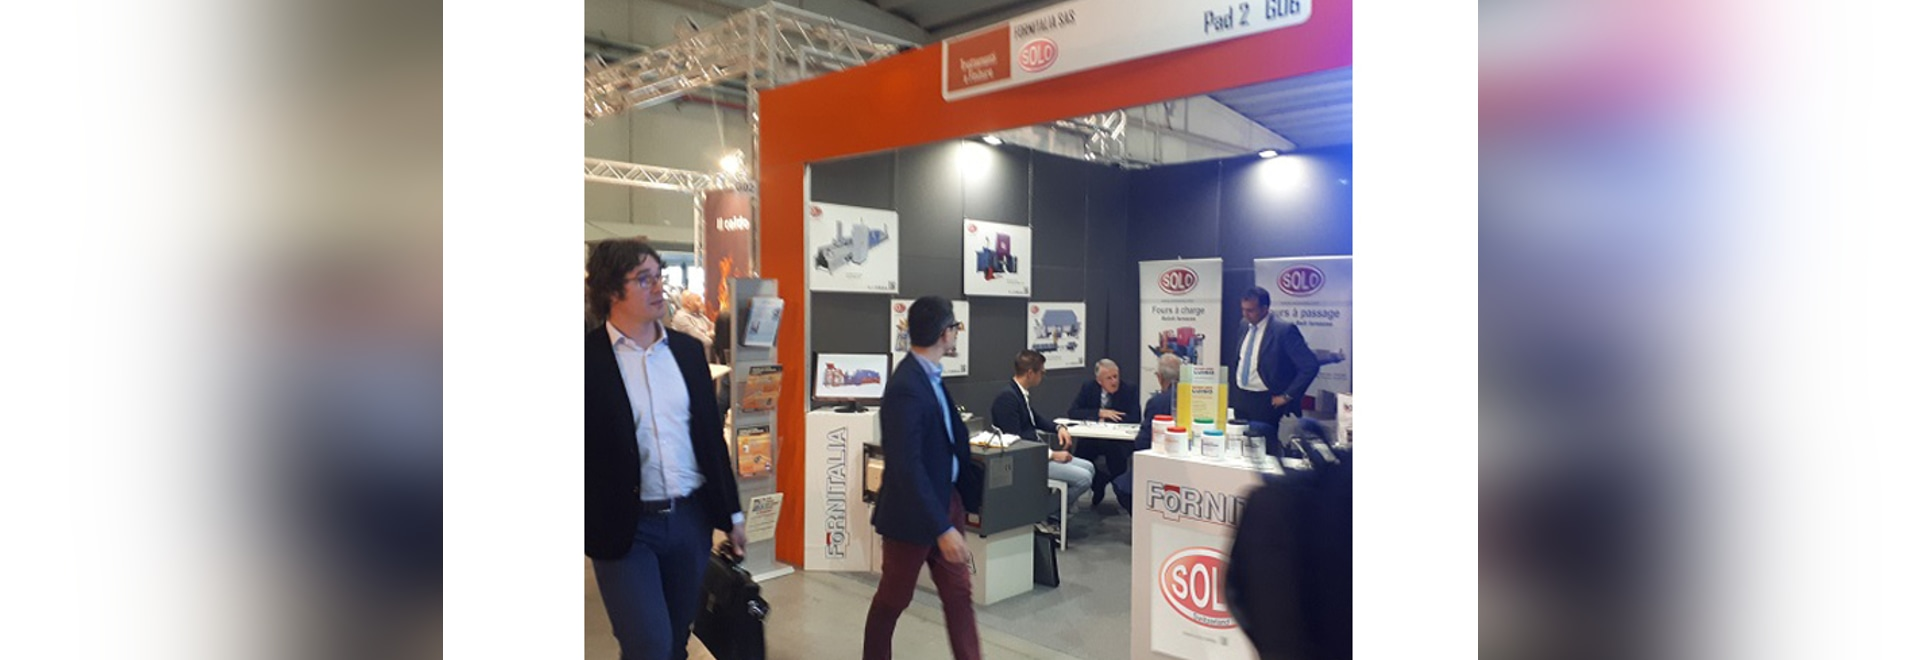 """SOLO Swiss participation at """"MECSPE 2019"""" exhibition, 28-30 March, PARMA, Italy."""